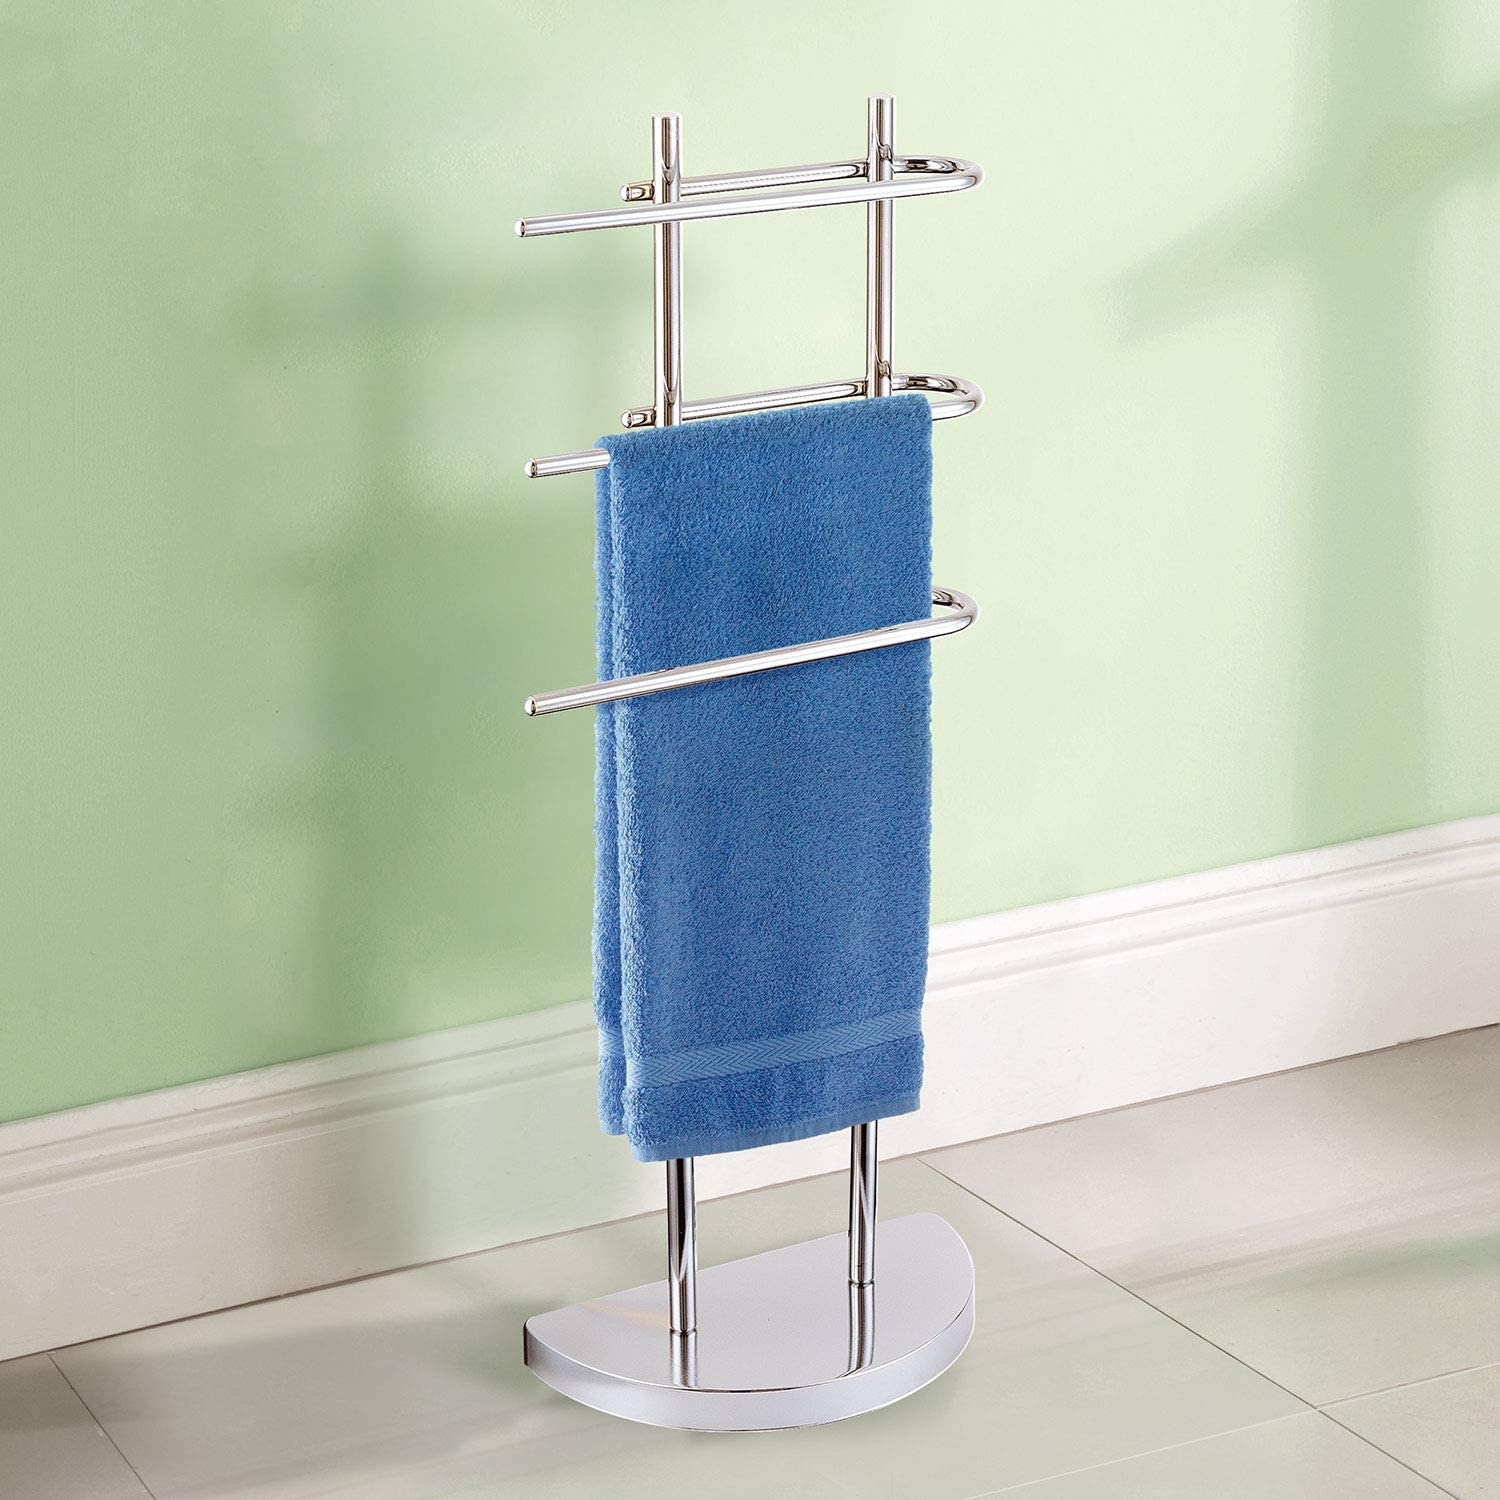 Taylor & Brown® Chrome Floor Standing Towel Stand with 3 U-Shaped